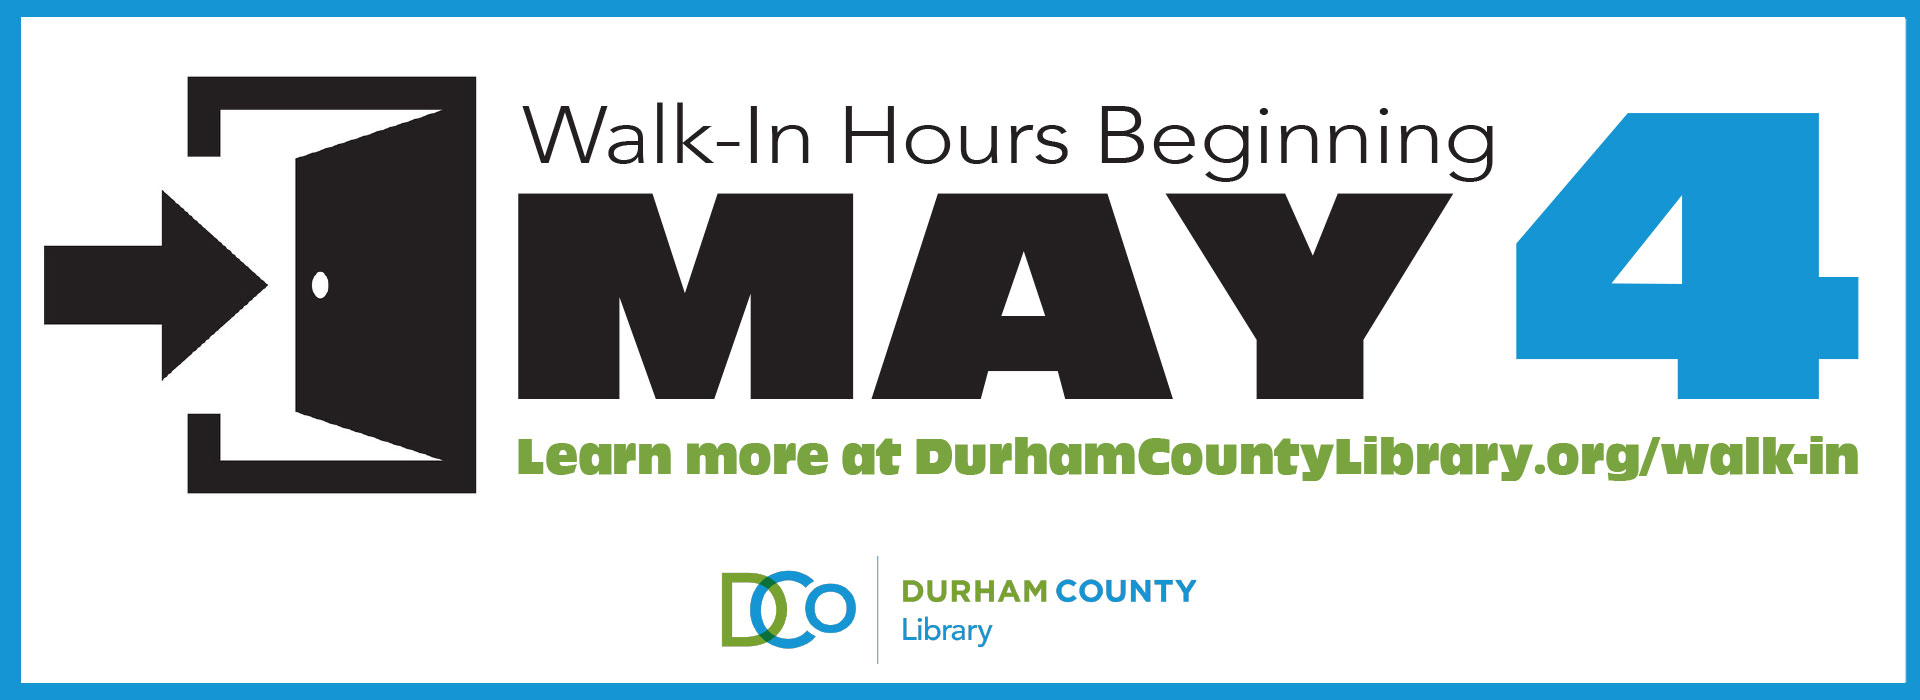 Walk-in hours beginning May 4 graphic. Learn more at durhamcountylibrary.org/walk-in